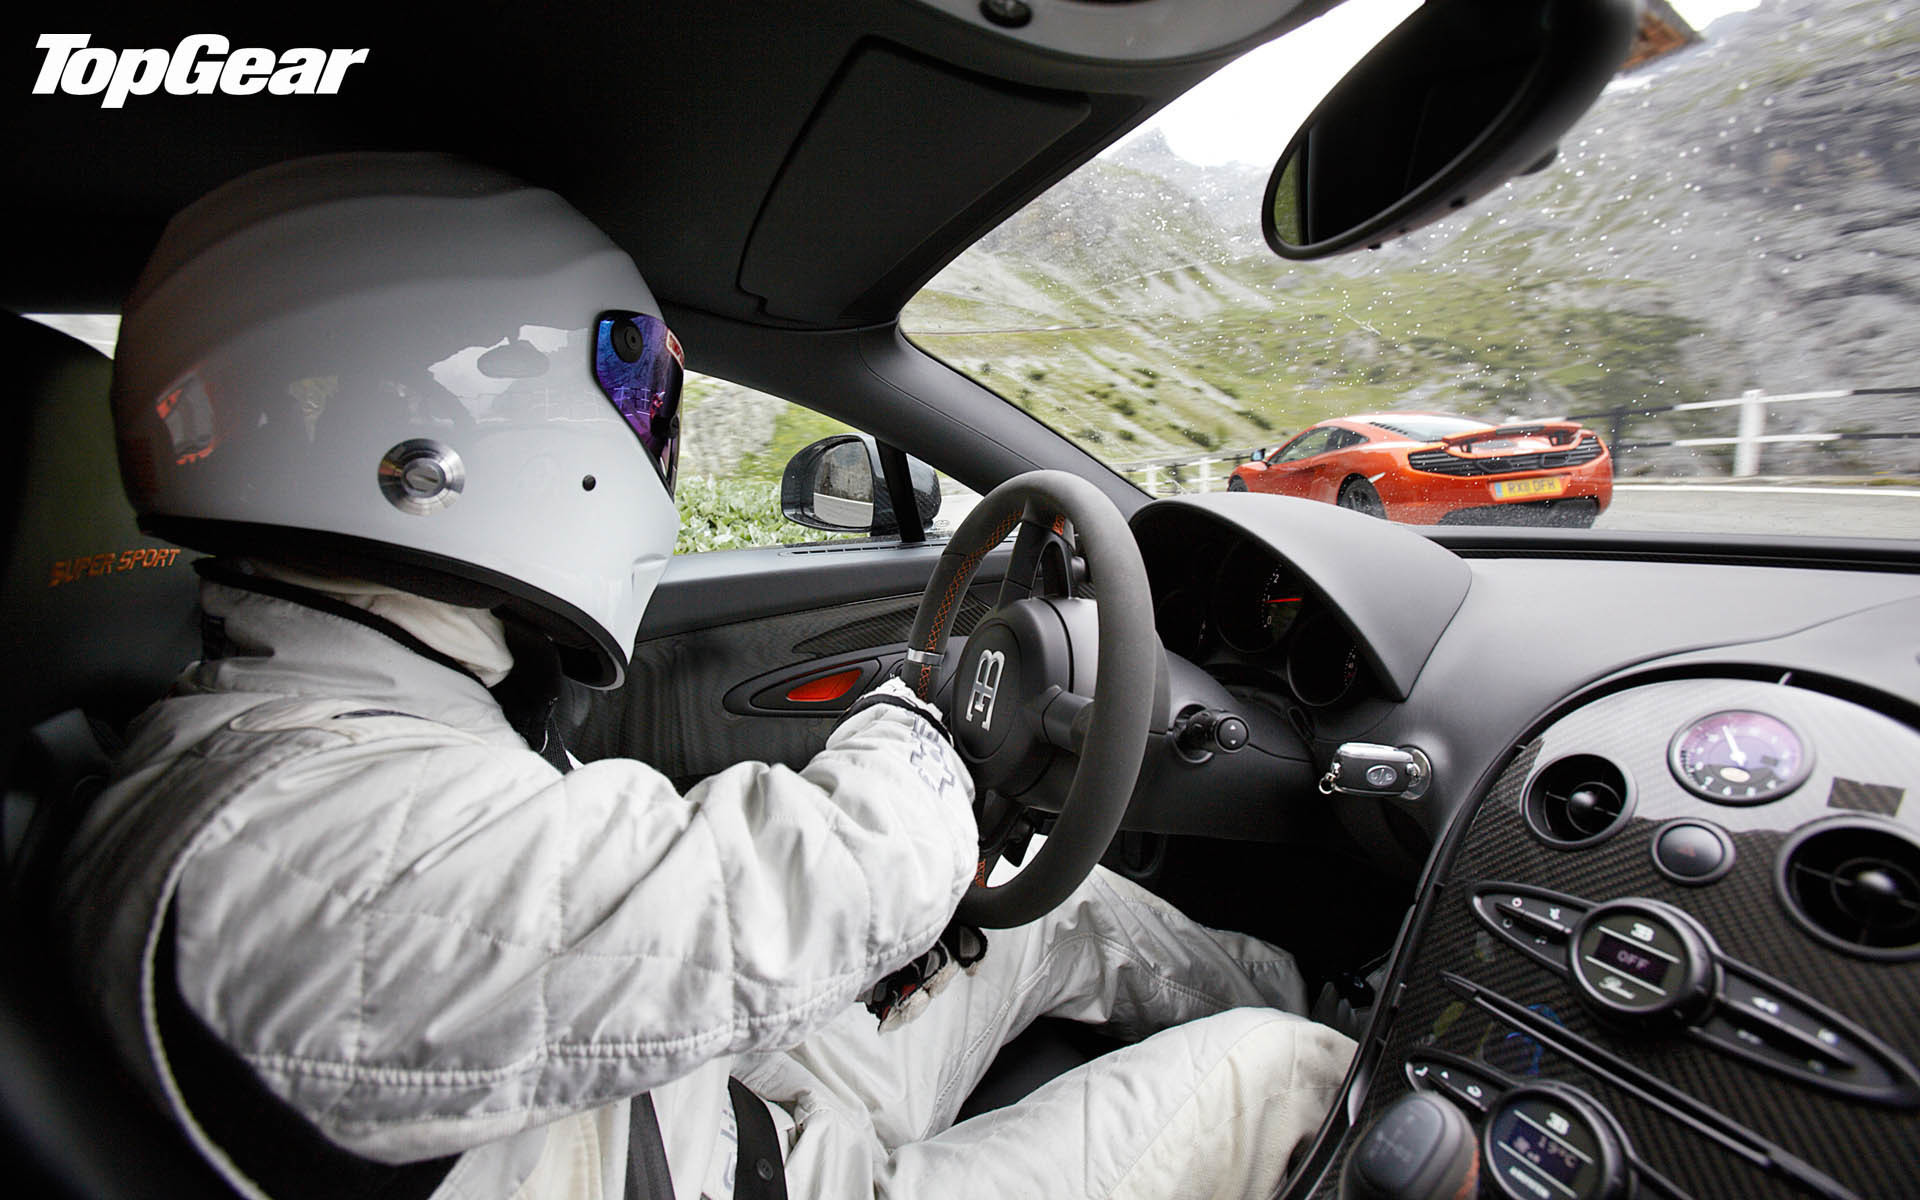 1920x1200  Top Gear Supercars: The Stig driving Bugatti Veyron VS McLaren  12C  wallpaper